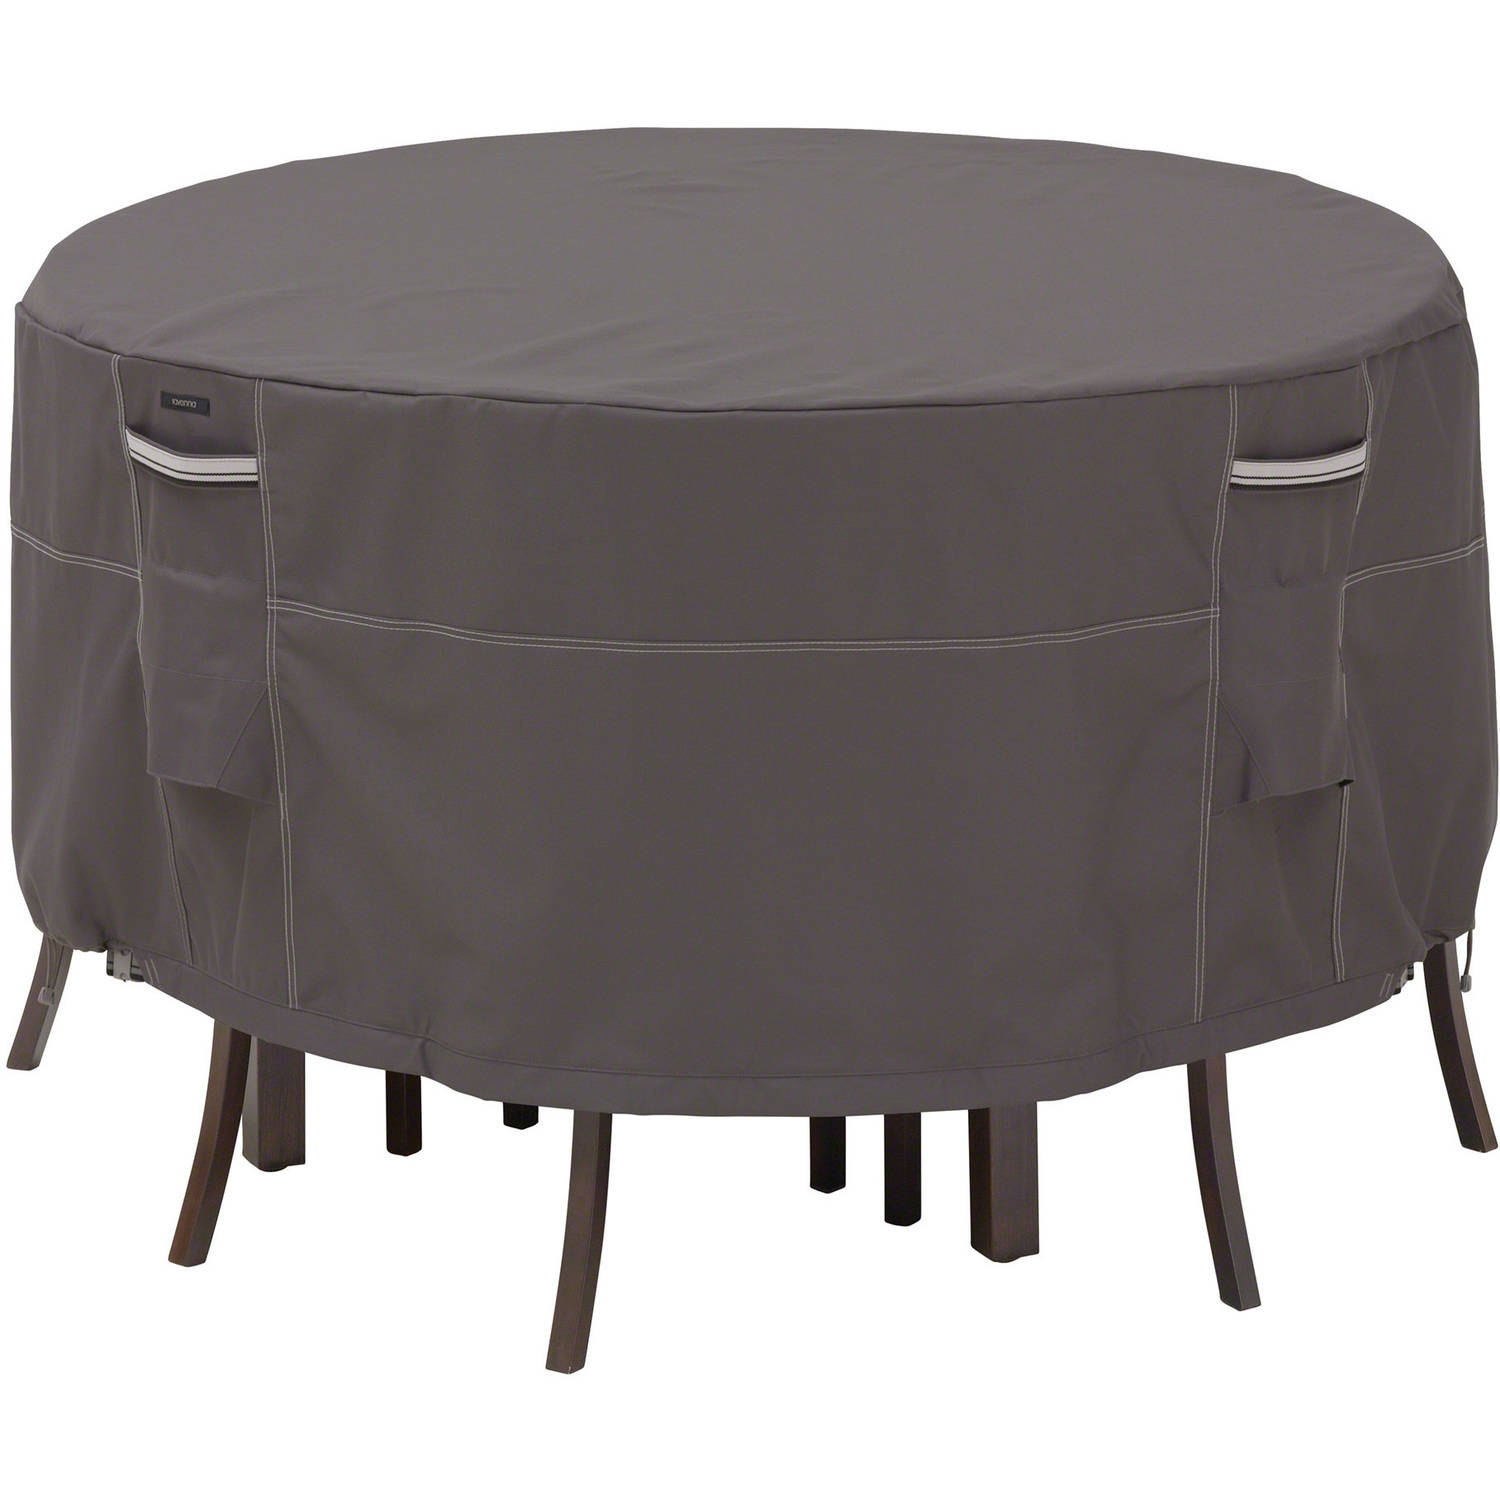 Classic Accessories Ravenna Round Small Patio Table and Chair Furniture Storage Cover,... by Outdoor Furniture Covers